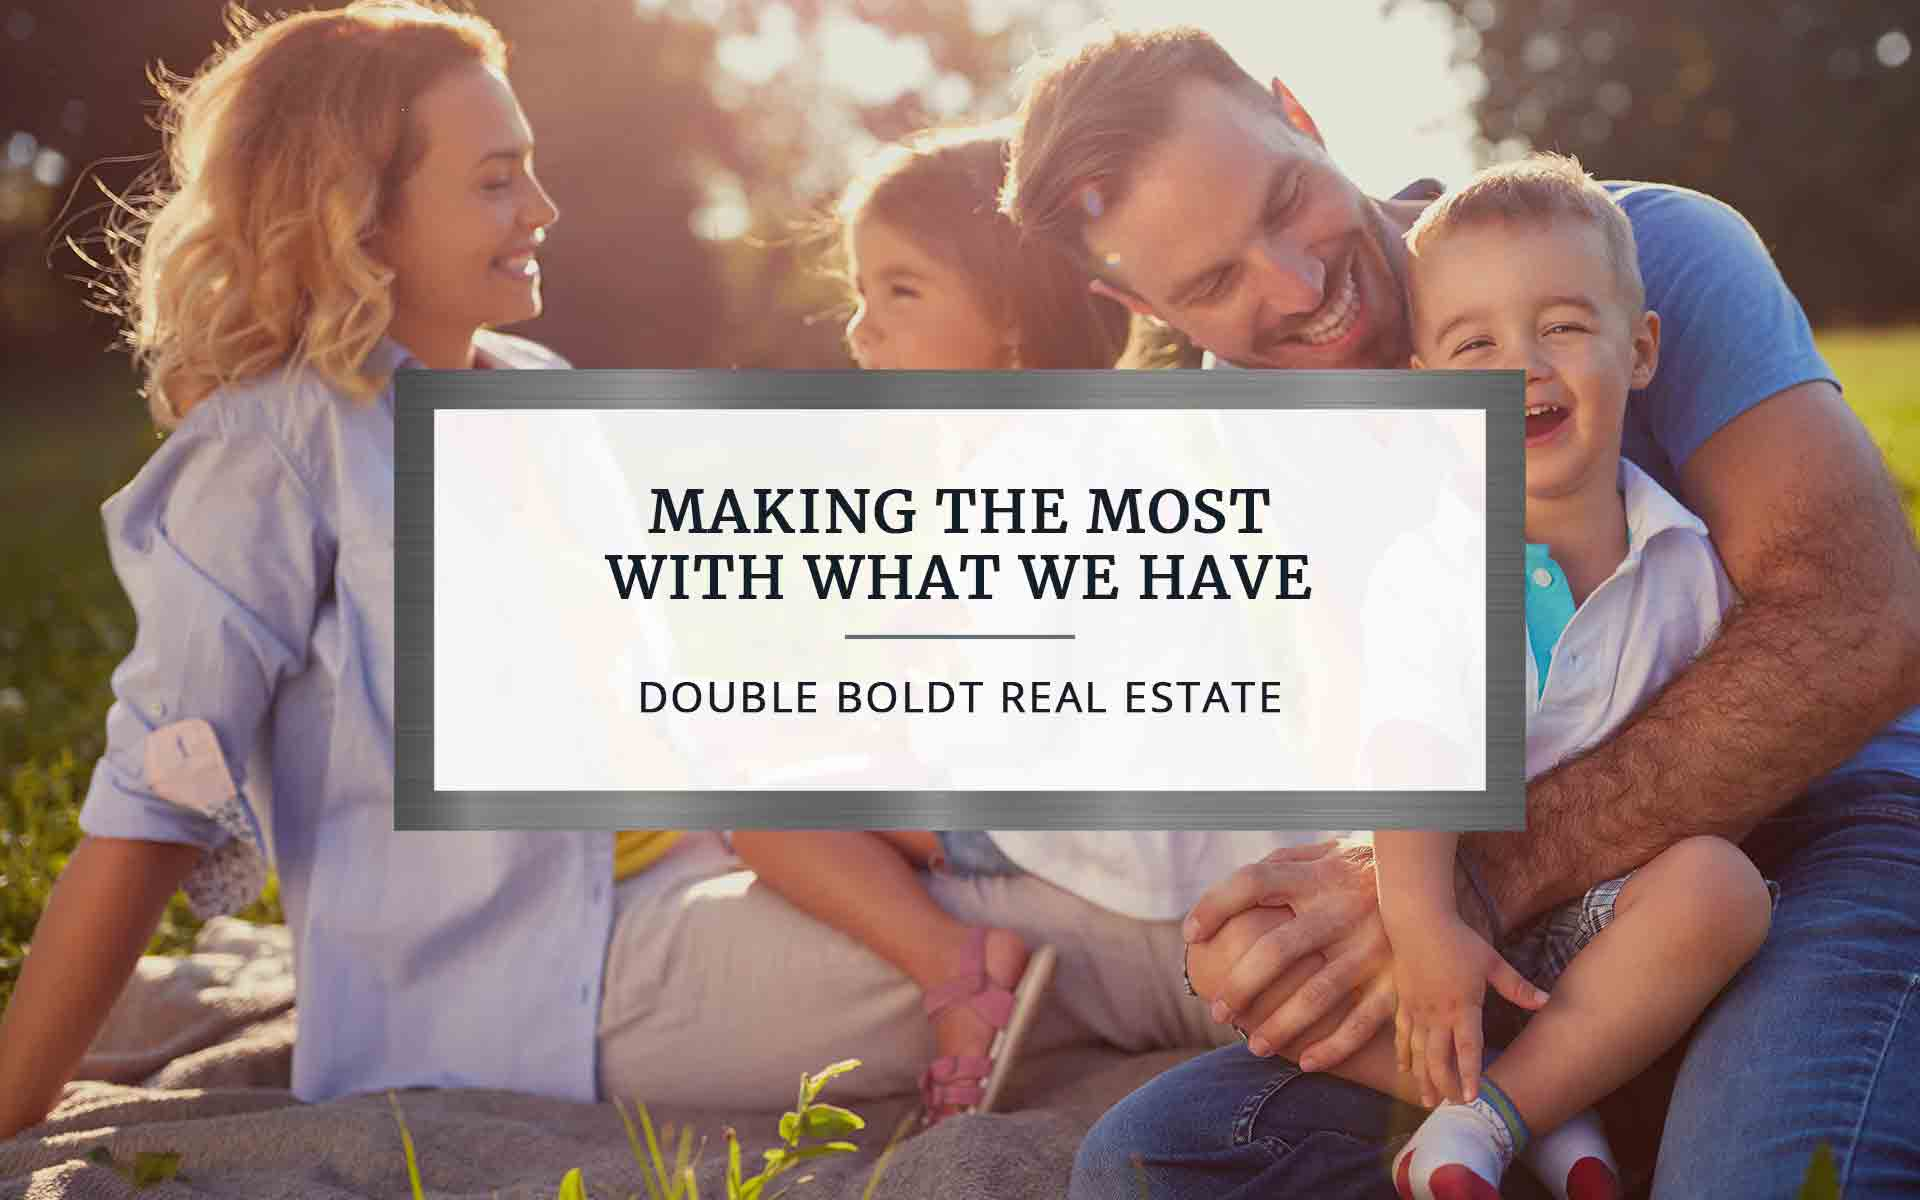 Making the Most With What We Have | Double Boldt Real Estate